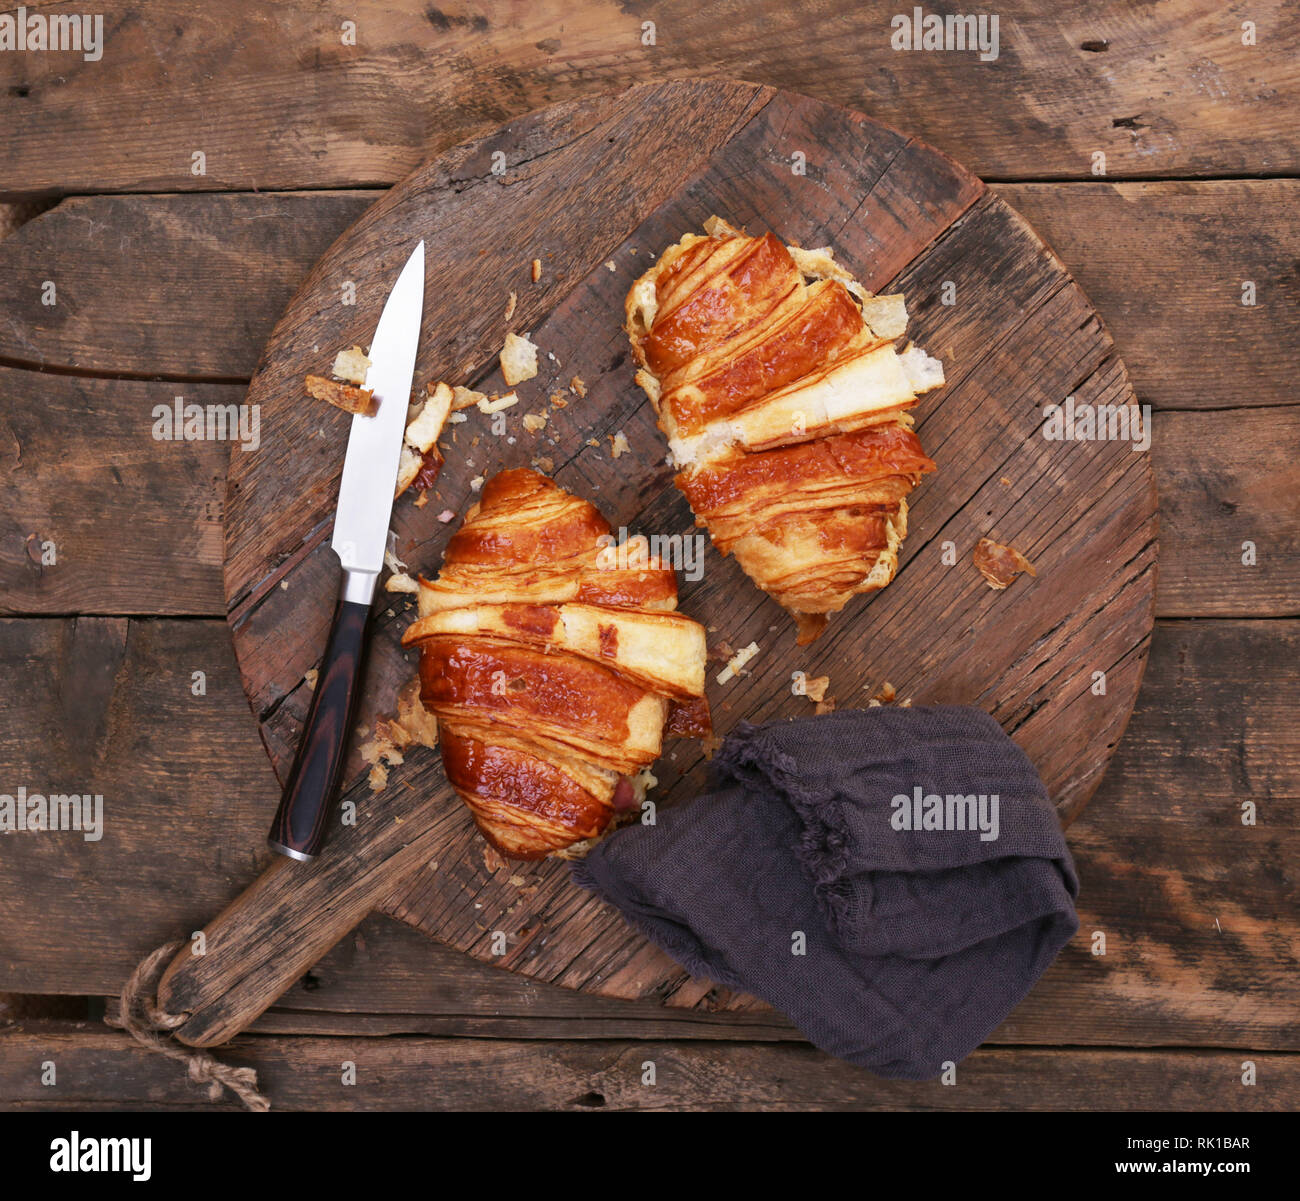 Cheese and bacon croissant on a wooden cutting board with knife - Stock Image